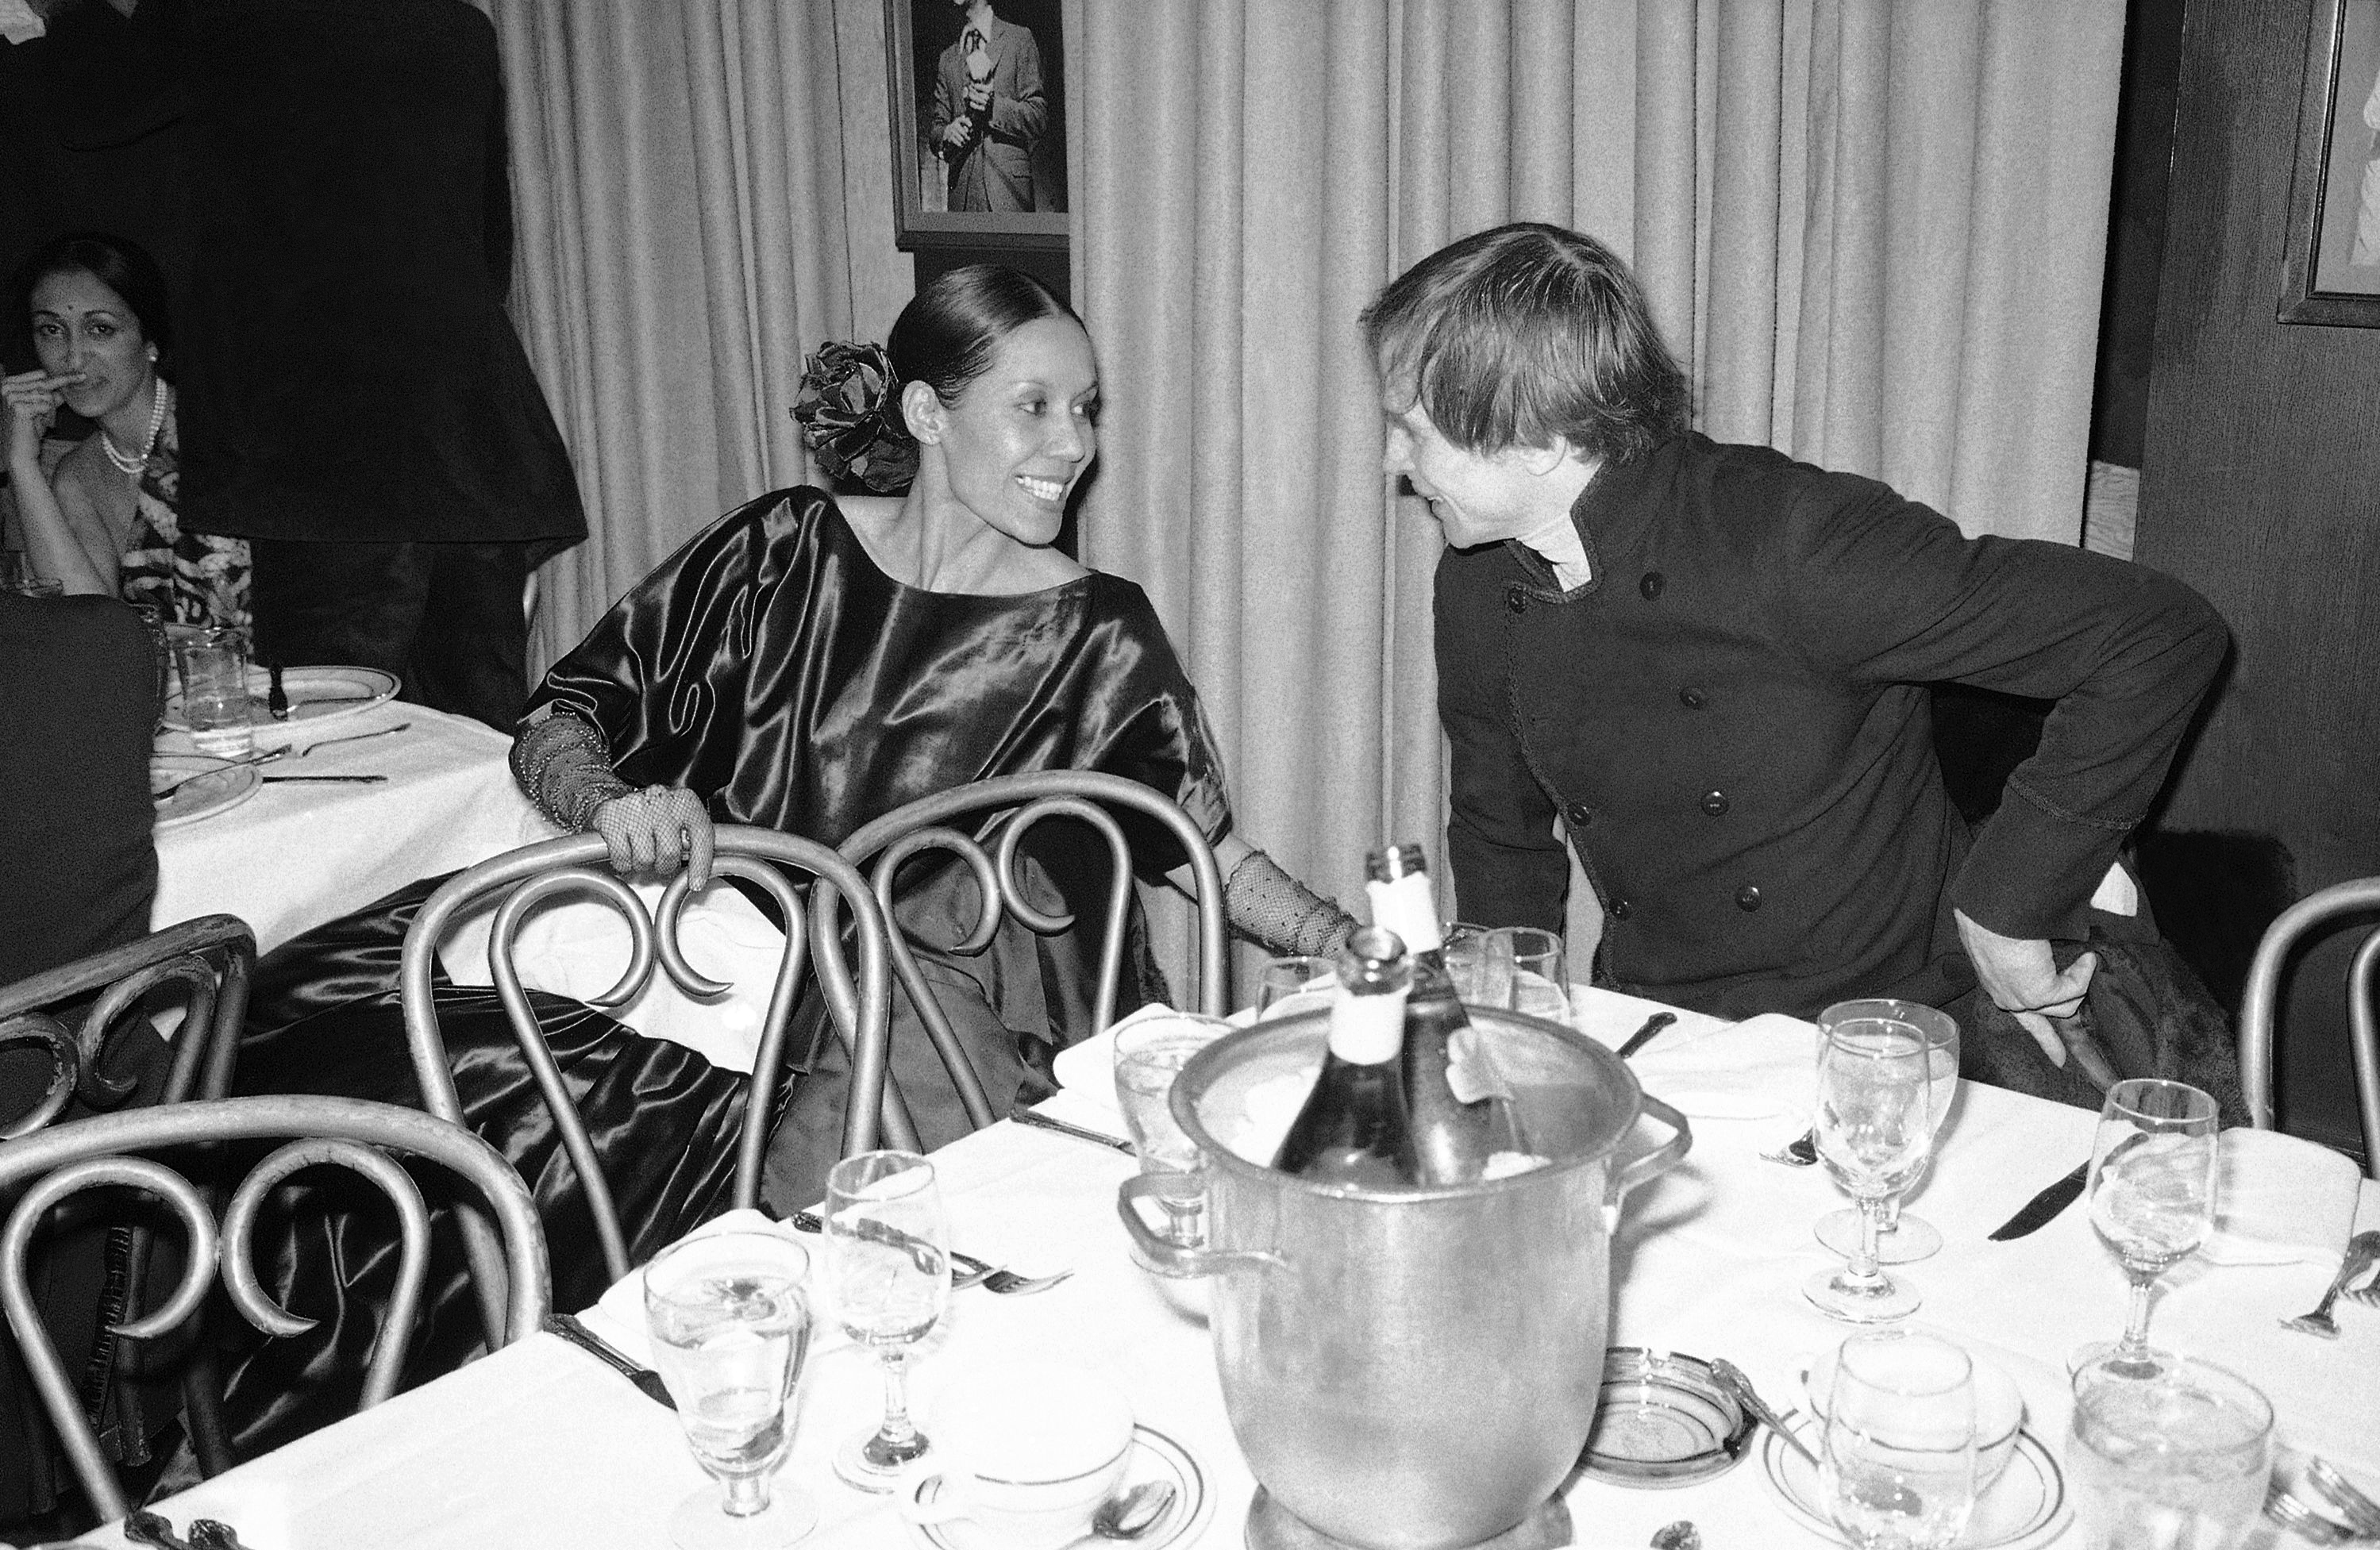 "FILE - In this March 1, 1977 file photo, dancer Carmen de Lavallade chats with Rudolf Nureyev after the opening night of ""Nureyev at the Uris"" at a party at Sardi's in New York. The John F. Kennedy Center for the Performing Arts on Thursday announced the recipients of the 2017 Kennedy Center Honors. They are: hip-hop artist LL Cool J, singers Gloria Estefan and Lionel Richie, television writer and producer Norman Lear and dancer Carmen de Lavallade. It's the 40th year of the awards, which honor people who have influenced American culture through the arts. (AP Photo/Carlos Rene Perez)"